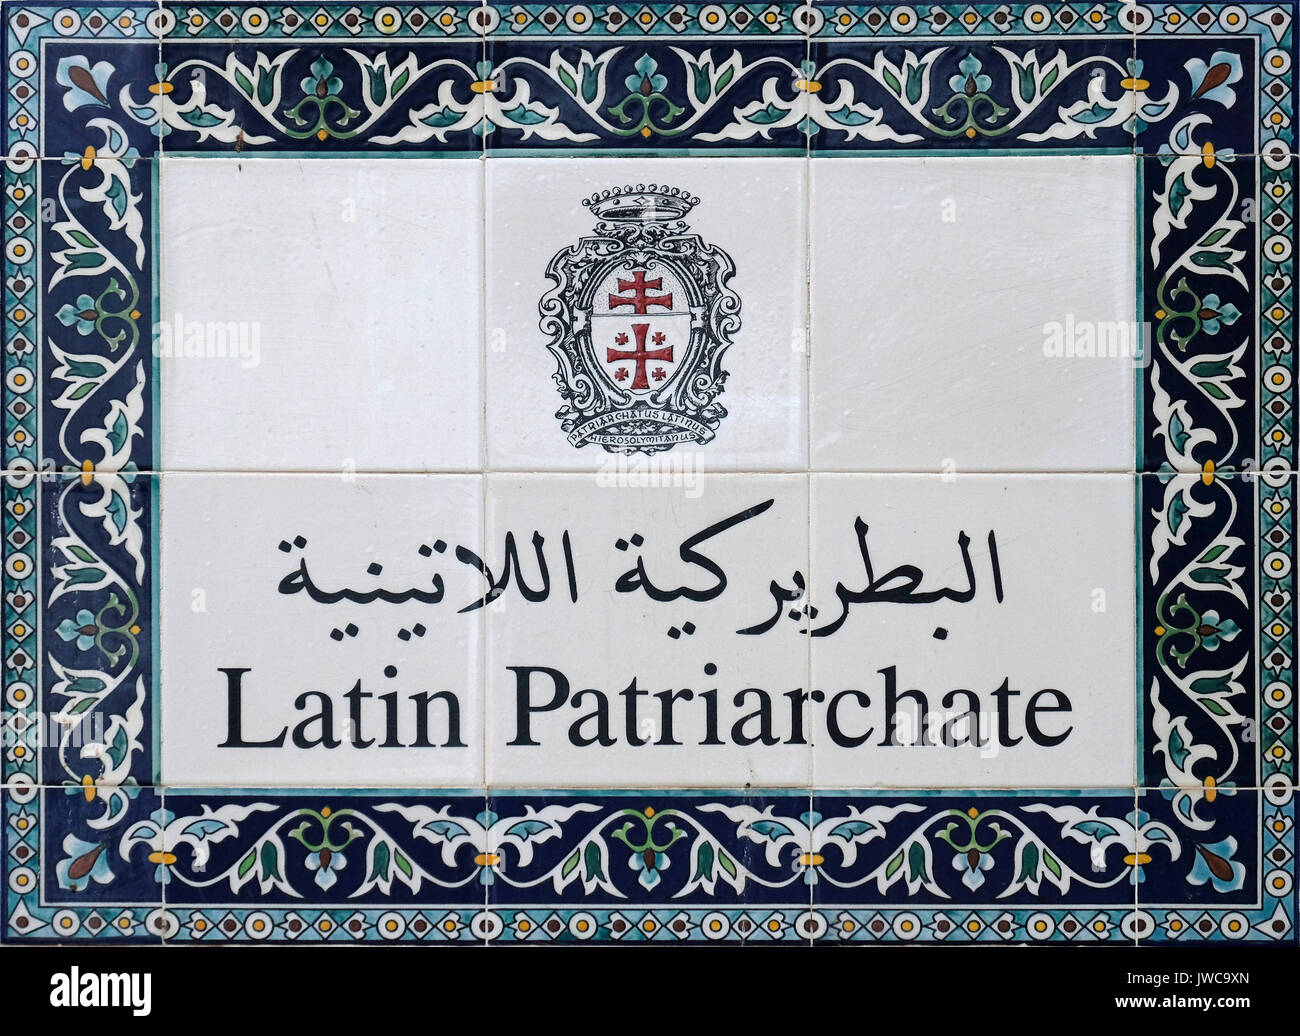 Sign on ceramic tiles in English and Arabic at the entrance to the building of the Jerusalem Latin Patriarchate in the Christian Quarter Old City East Jerusalem Israel - Stock Image